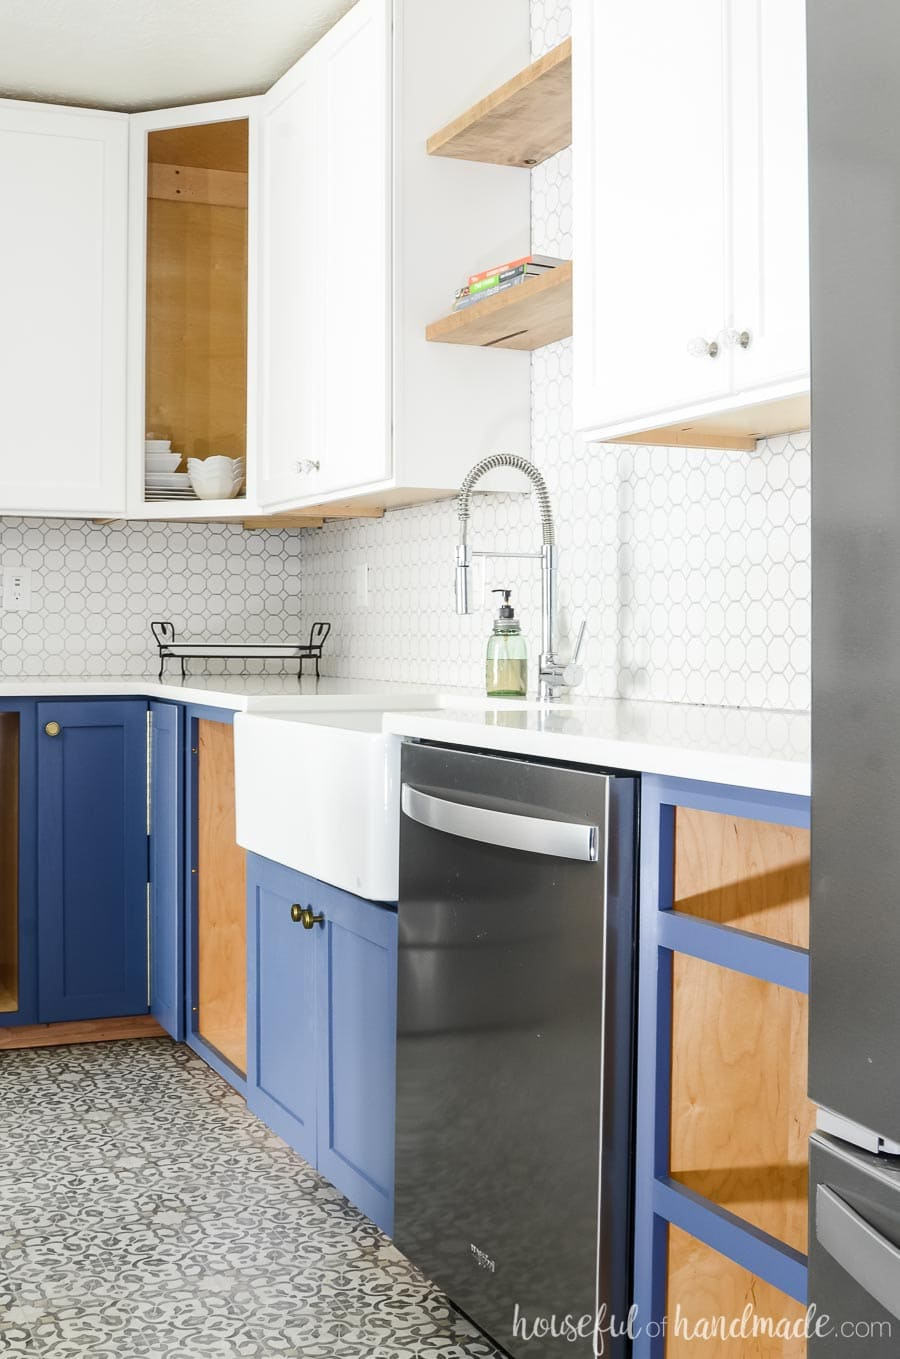 Farmhouse kitchen remodel with Durango Blue base cabinets and Polar Bear upper cabinets. White octagon tile and large farmhouse sink. Housefulofhandmade.com